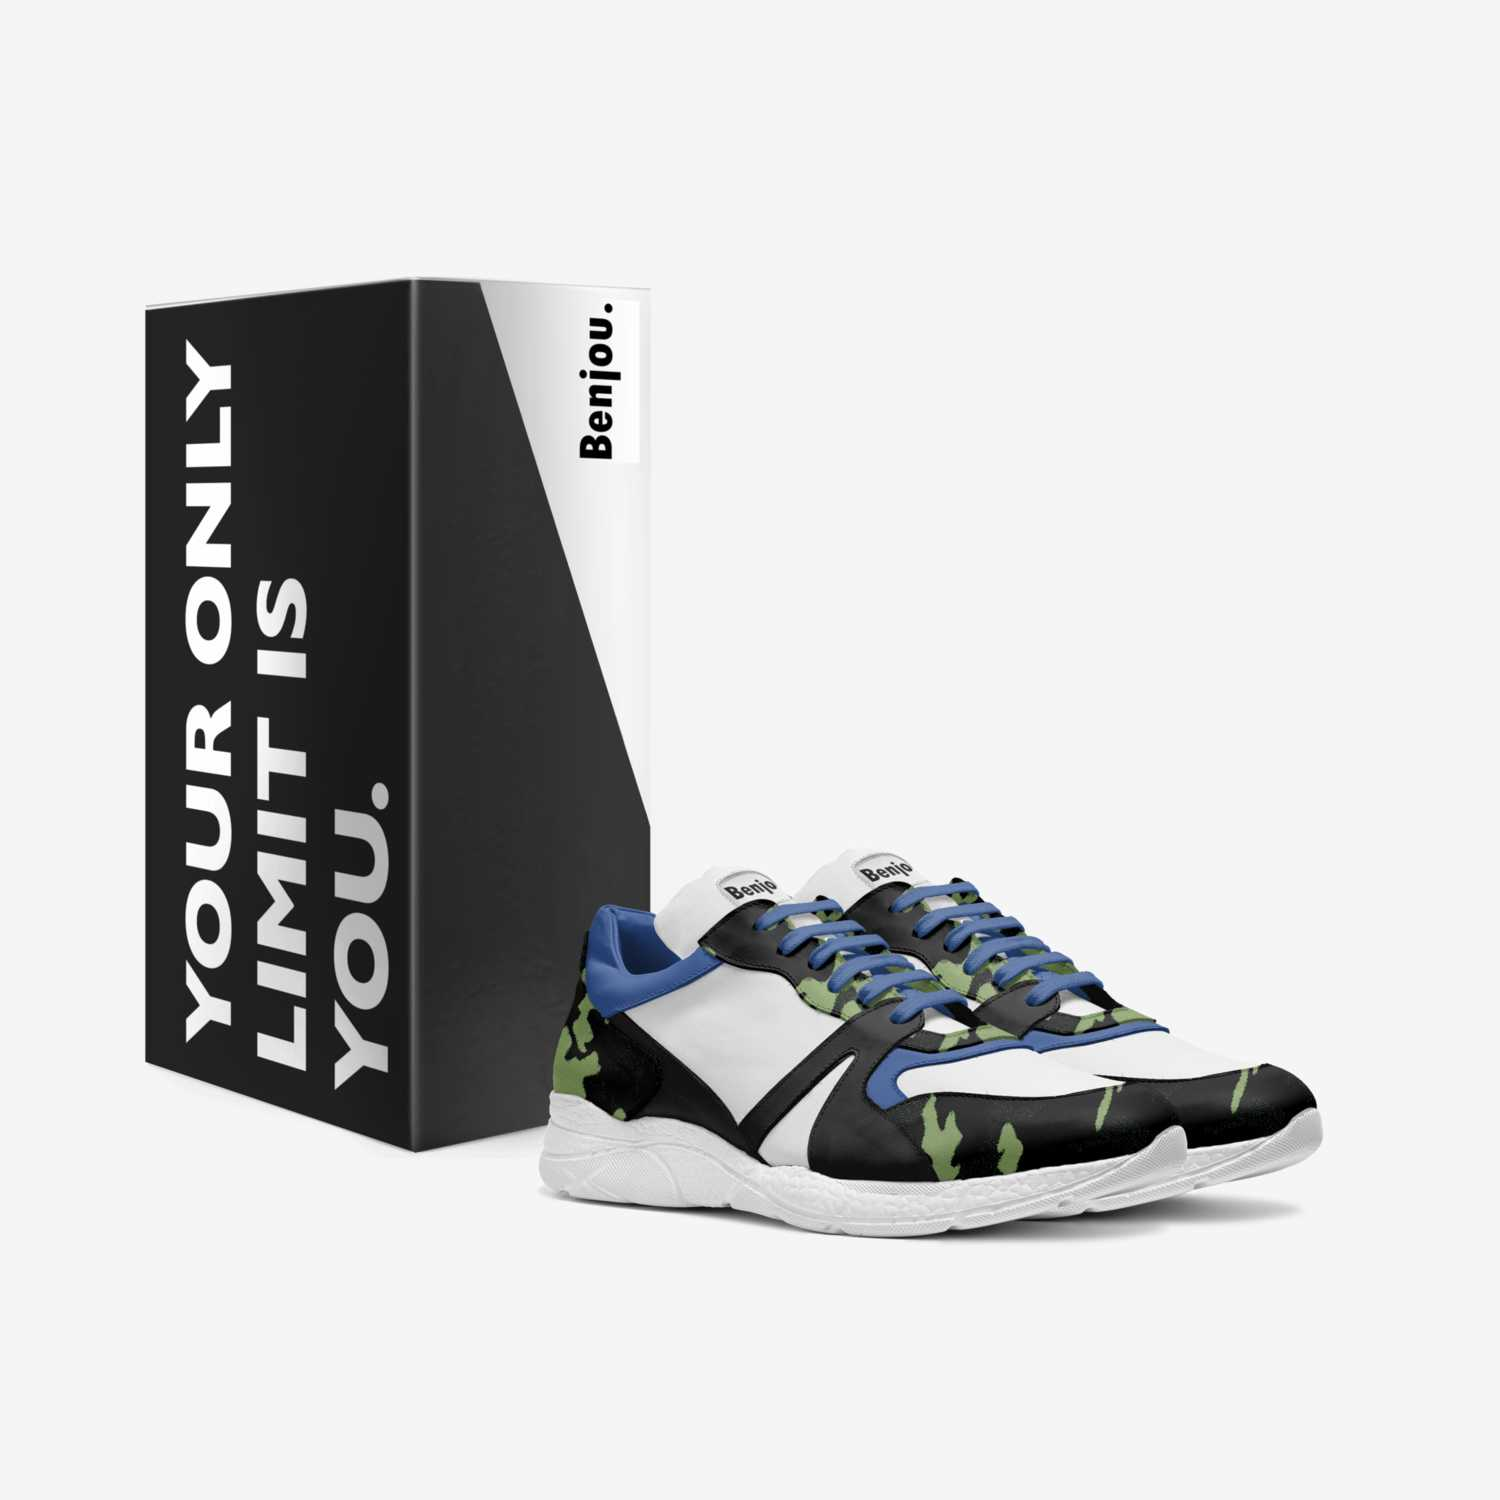 X Force camo custom made in Italy shoes by Benjamin Gantois | Box view